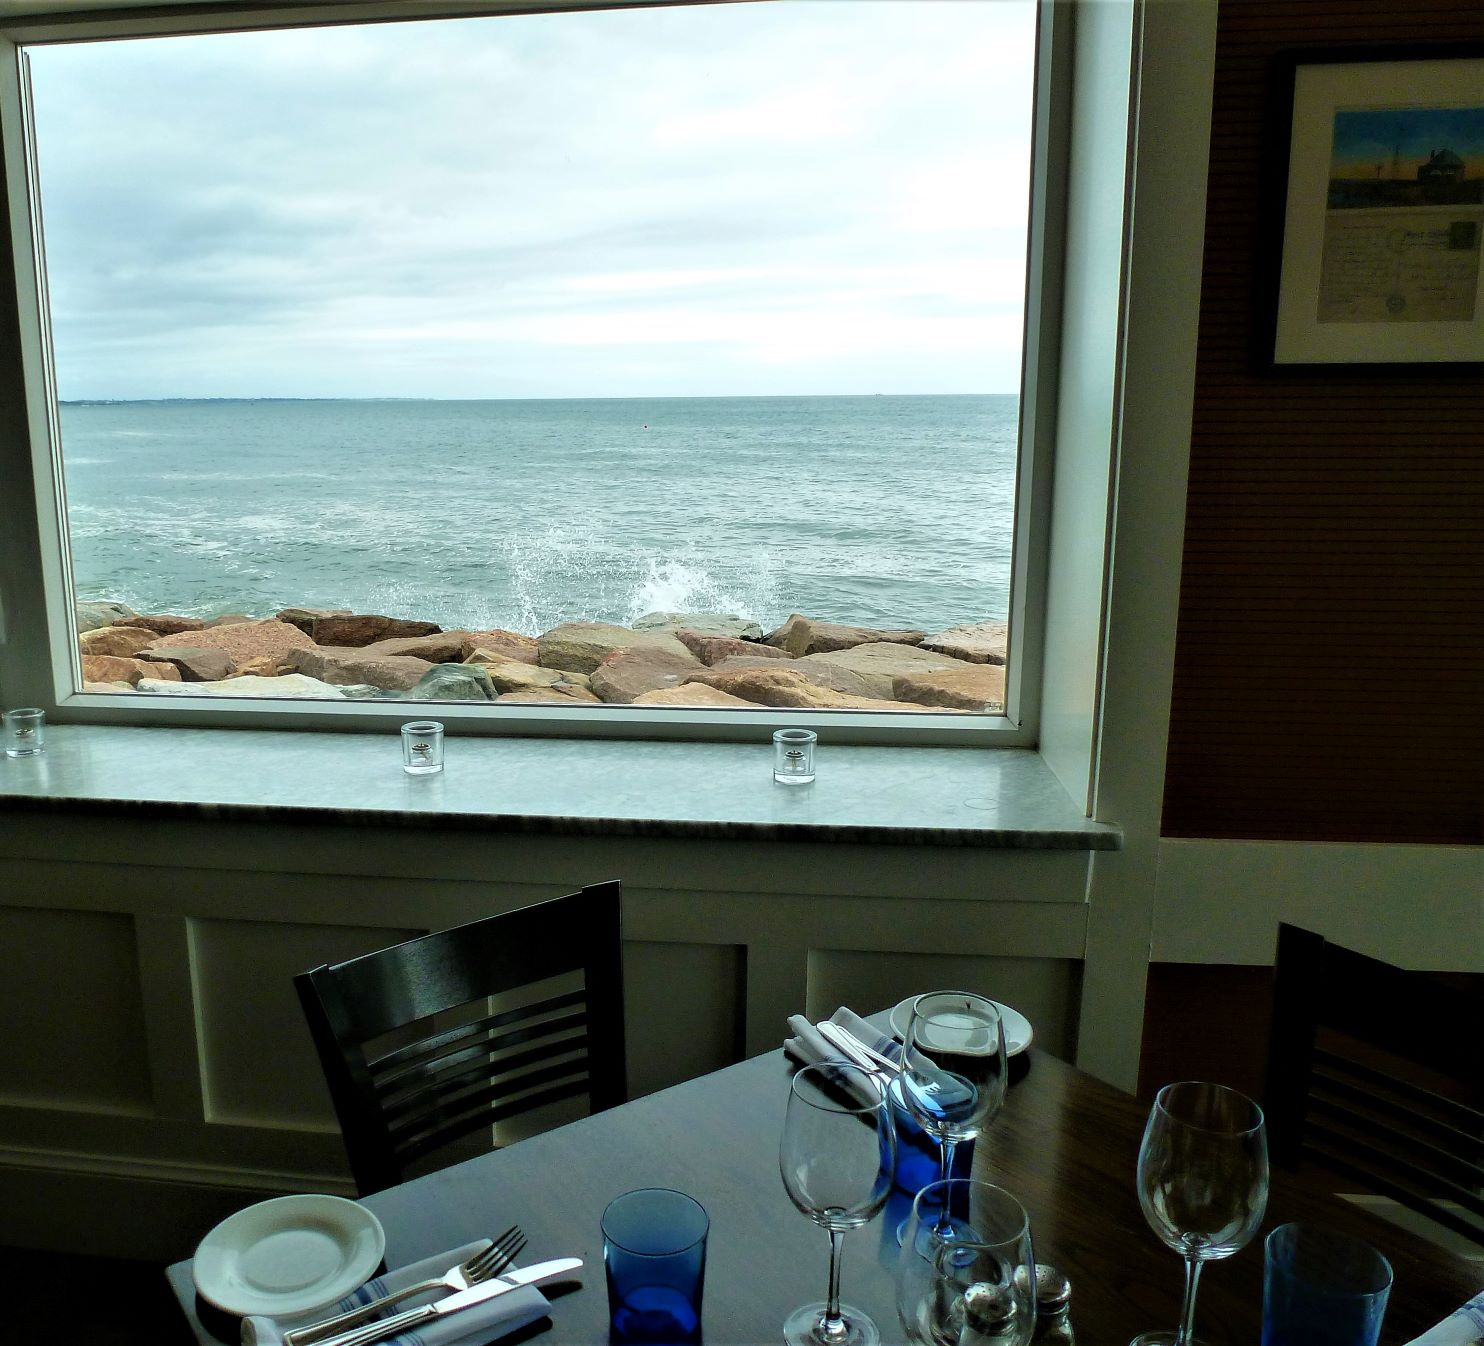 Water views from the Coast Guard House Restaurant in Narragansett, Rhode Island.